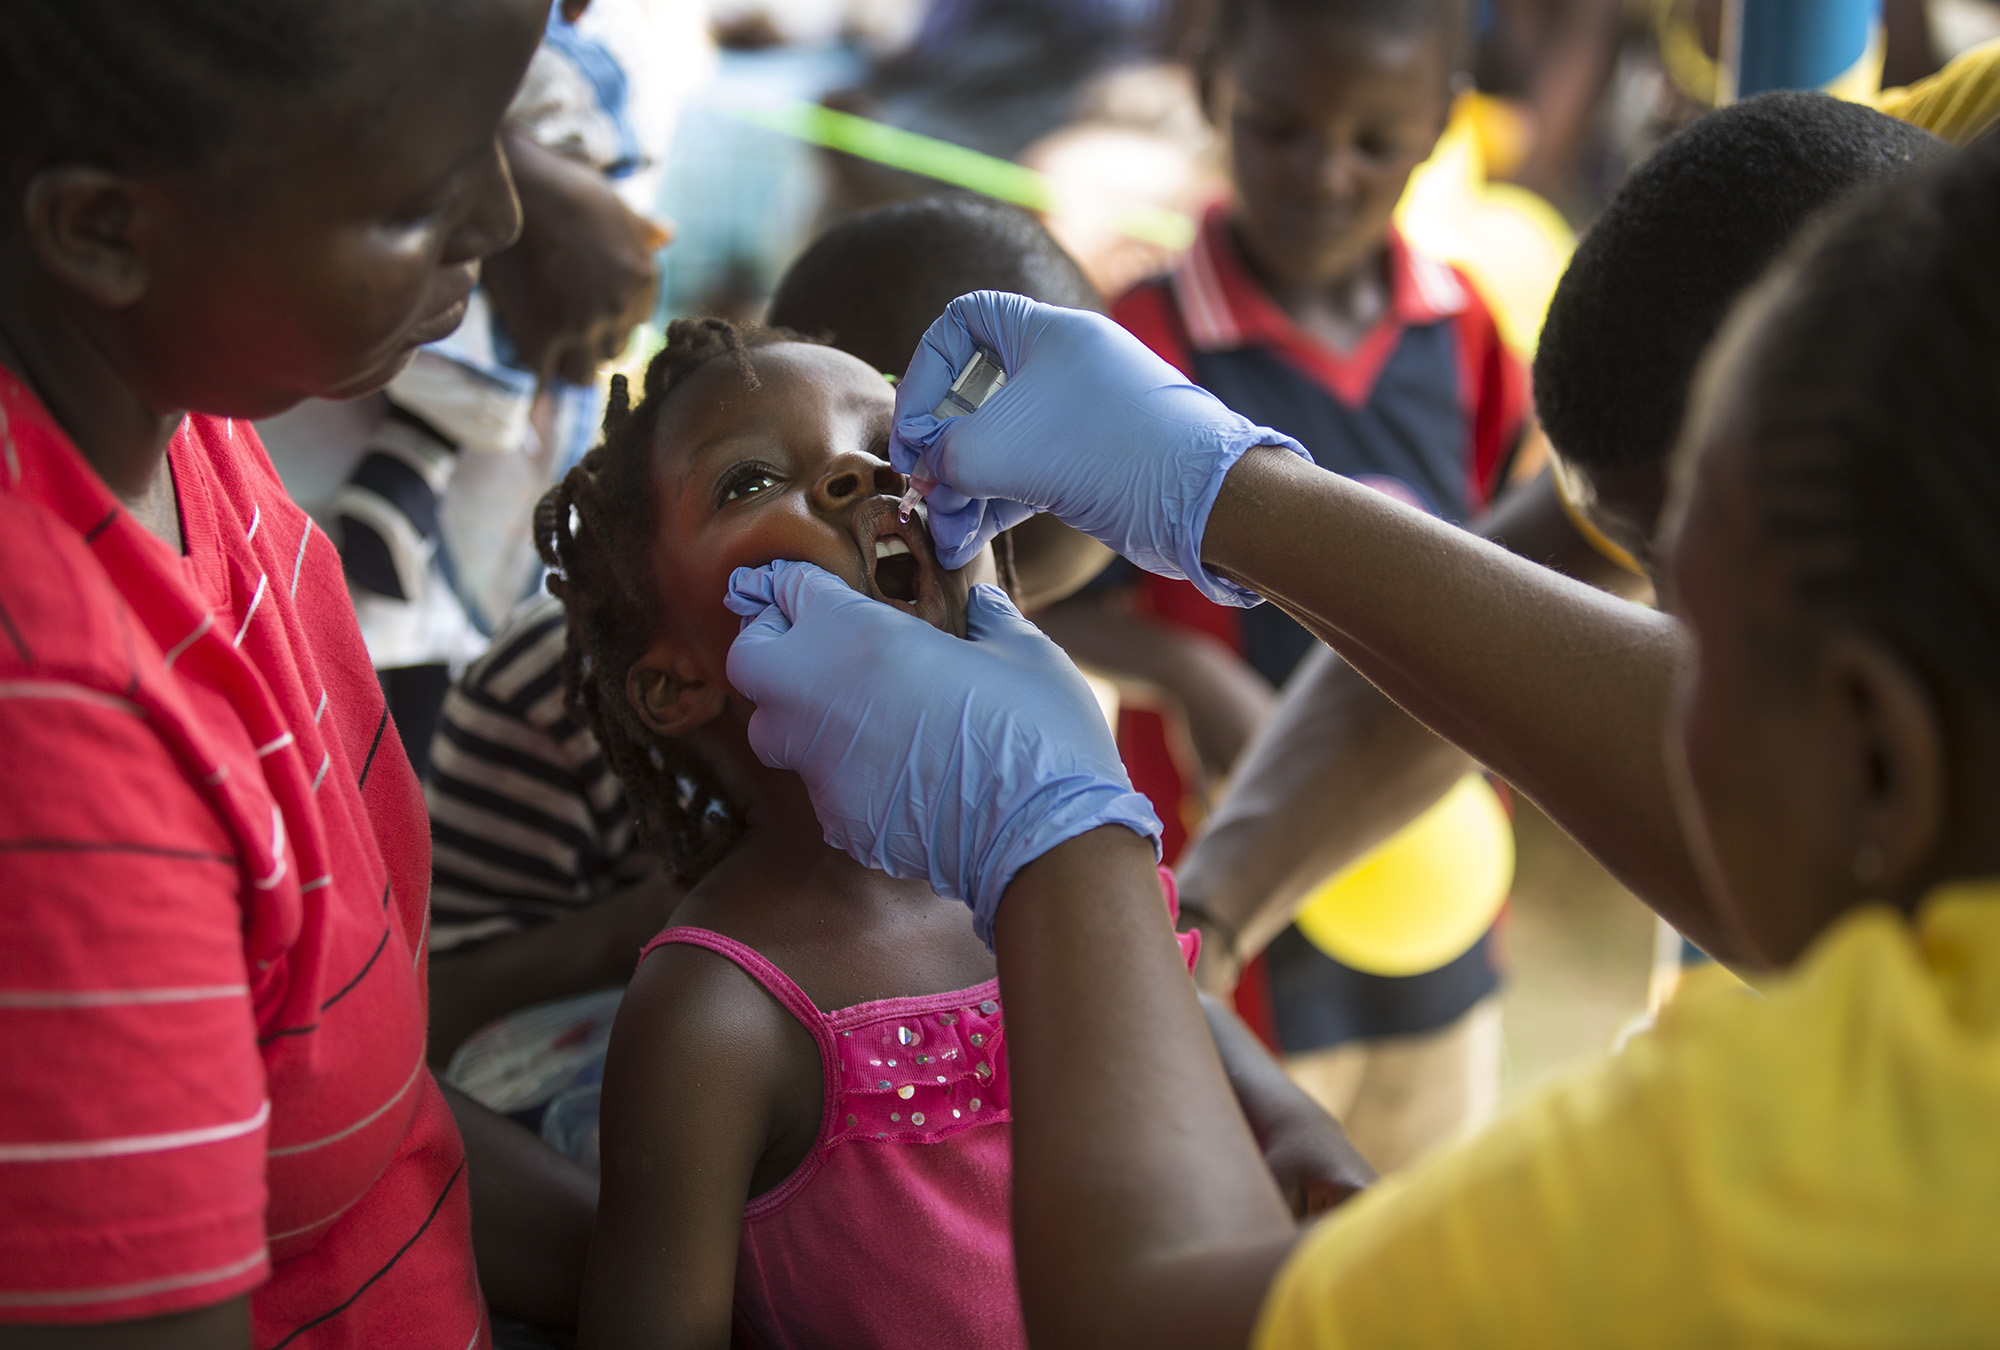 Three-year-old Stephanie receives the polio vaccine.